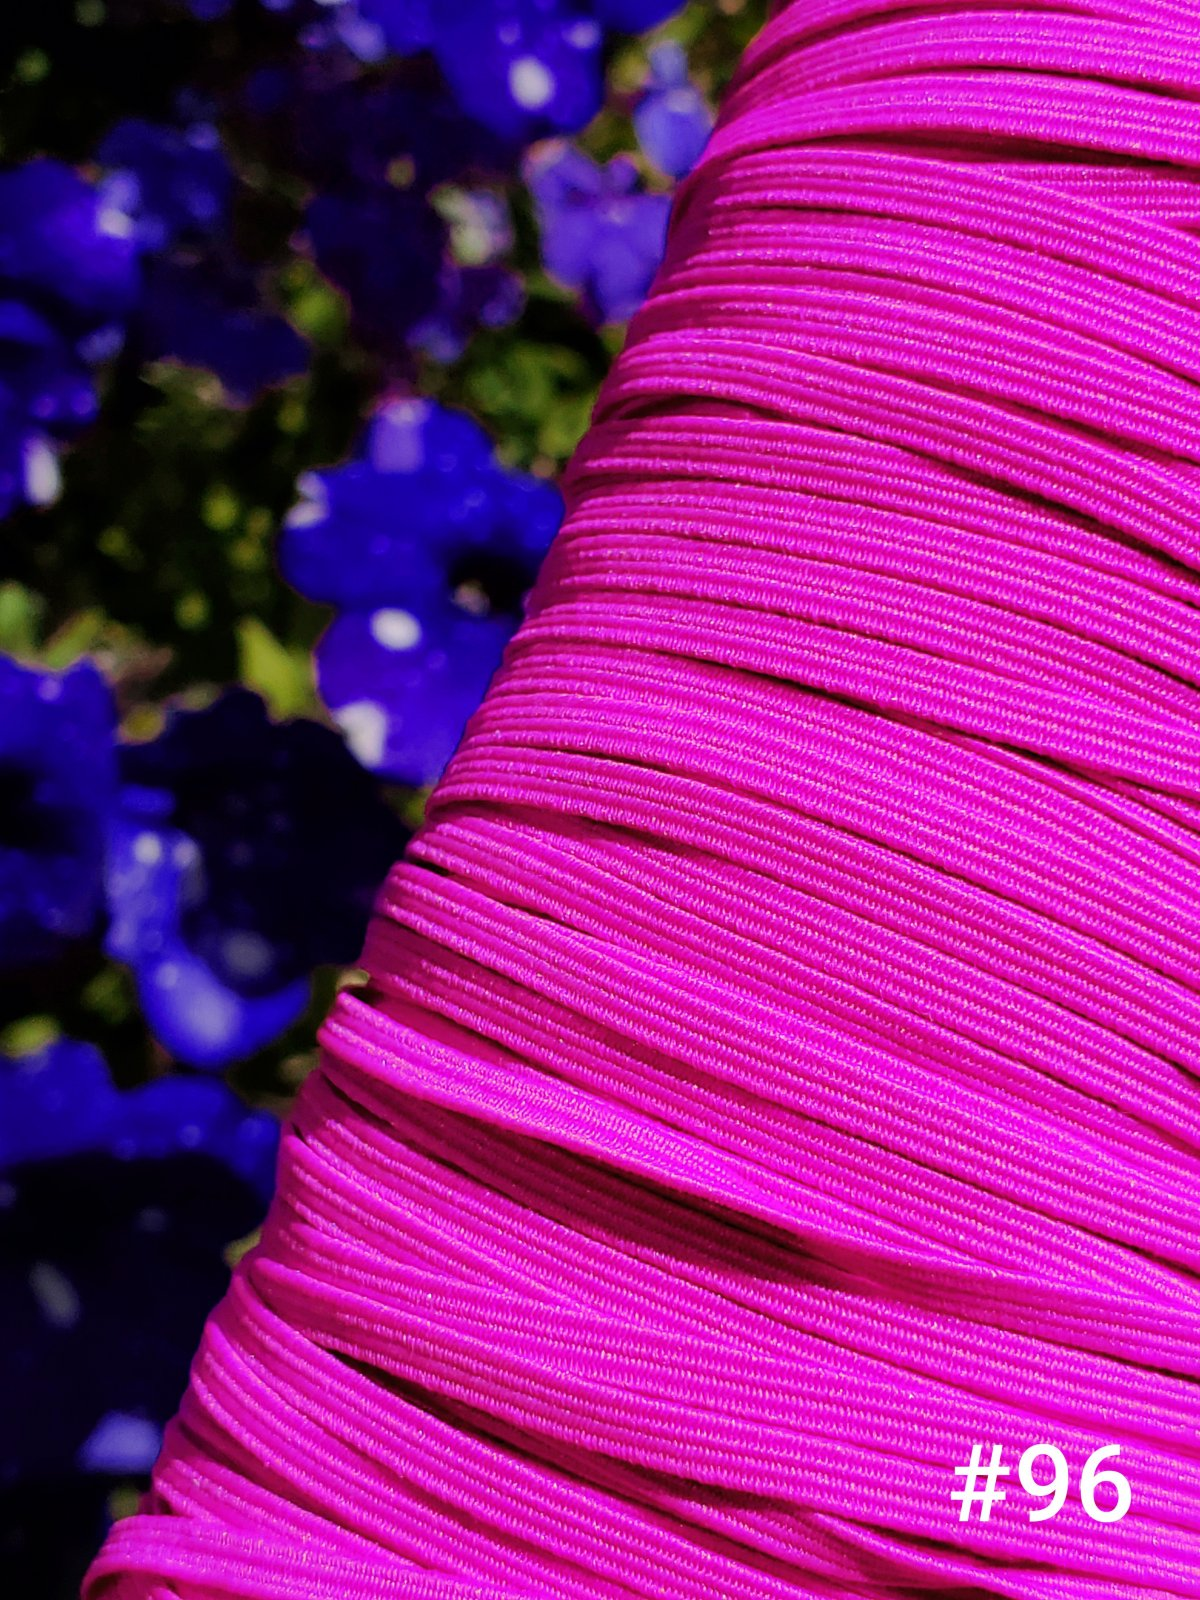 Cindy-rellas 1/8 inch (3mm) Elastic  - Hot Pink